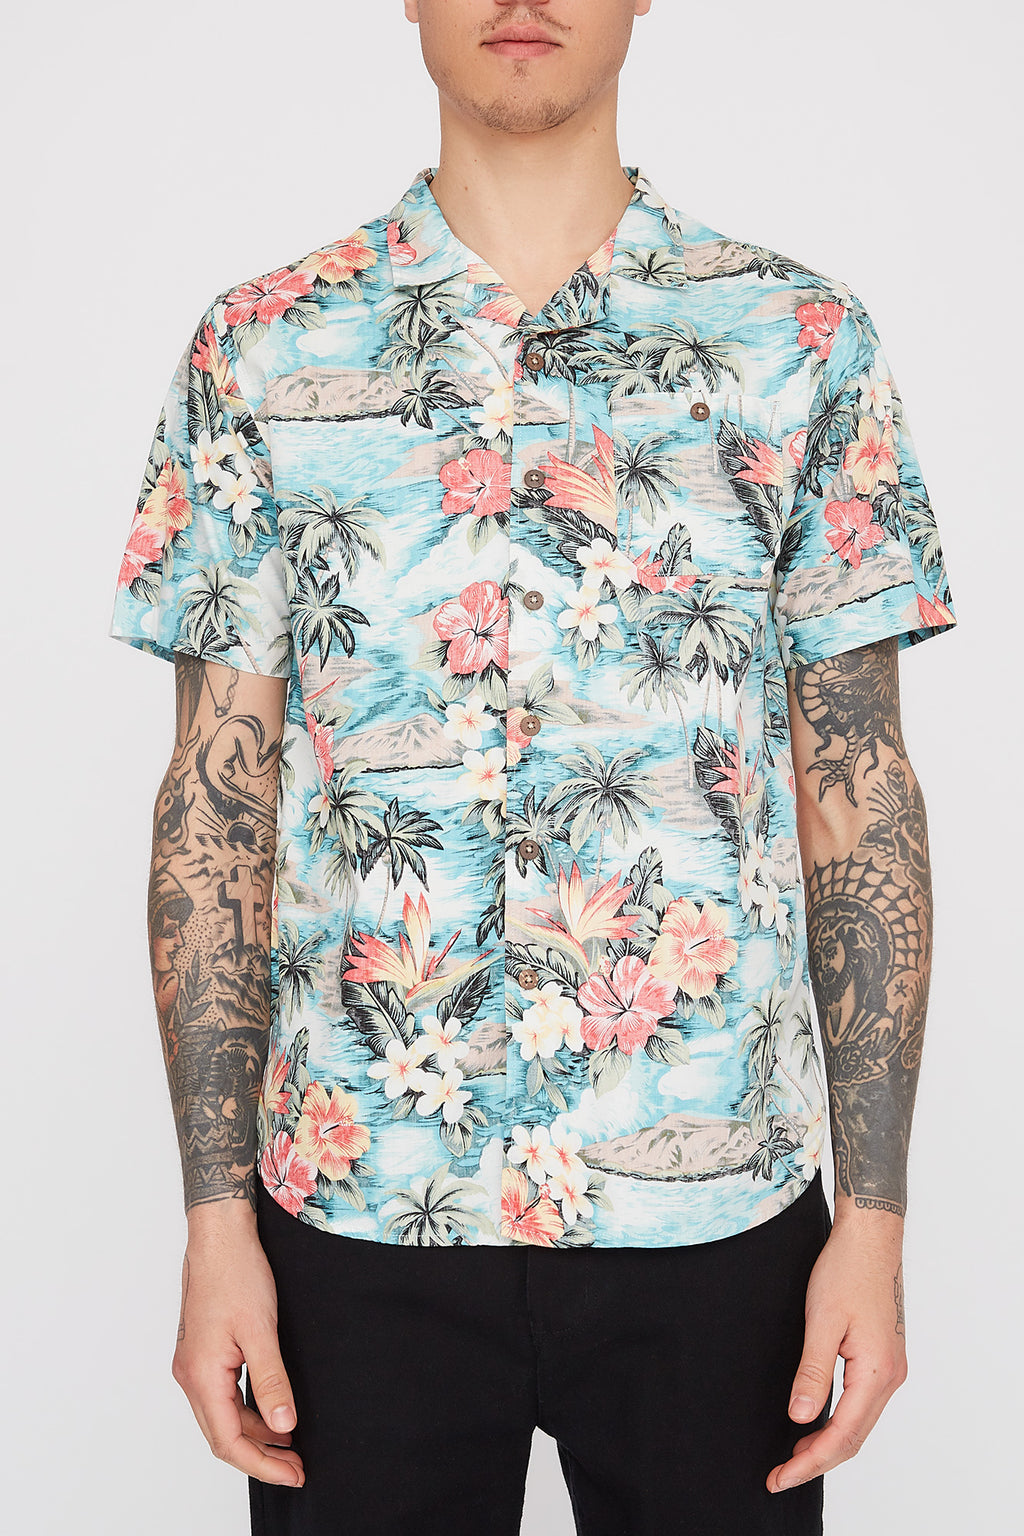 West49 Mens Floral Reverse Button Up Shirt